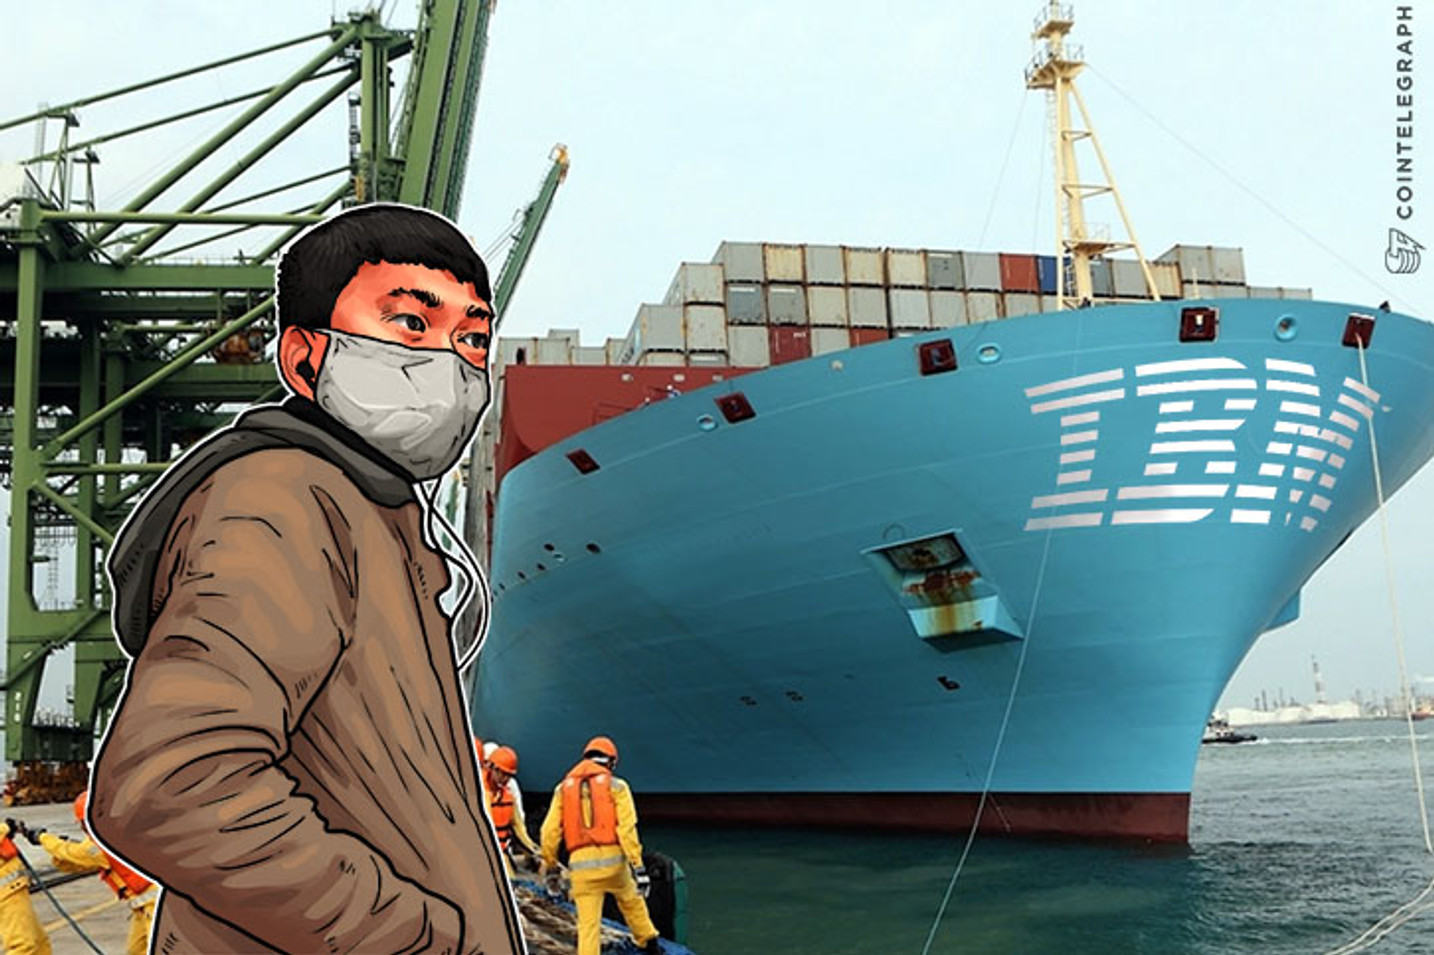 IBM Signs Deal with Singaporean Port Operator and Regional Shipping Firm to Pilot Blockchain-based Supply Chain Network